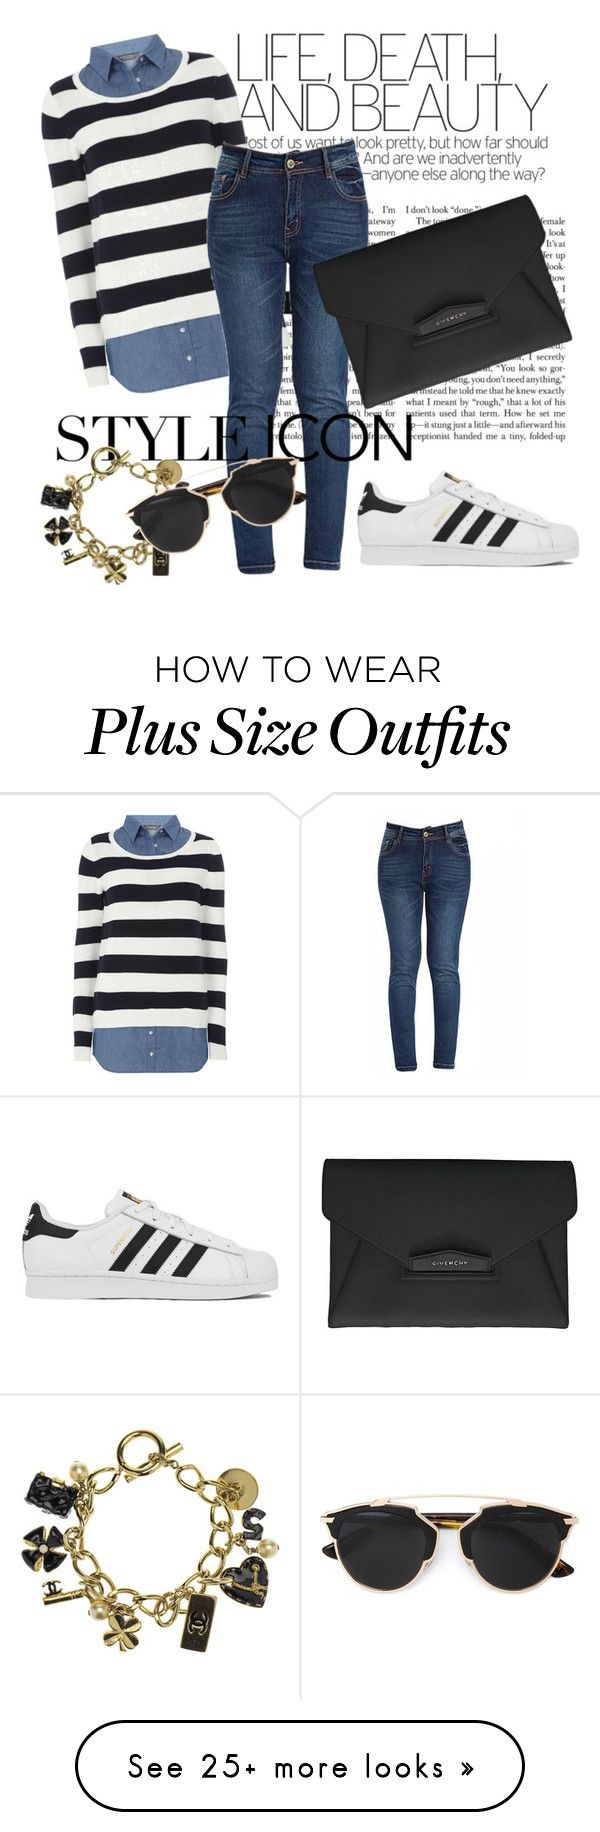 """42#"" by omahtawon on Polyvore featuring Dorothy Perkins, adidas, Givenchy, Chanel, Christian Dior, women's clothing, women, female, woman and misses"